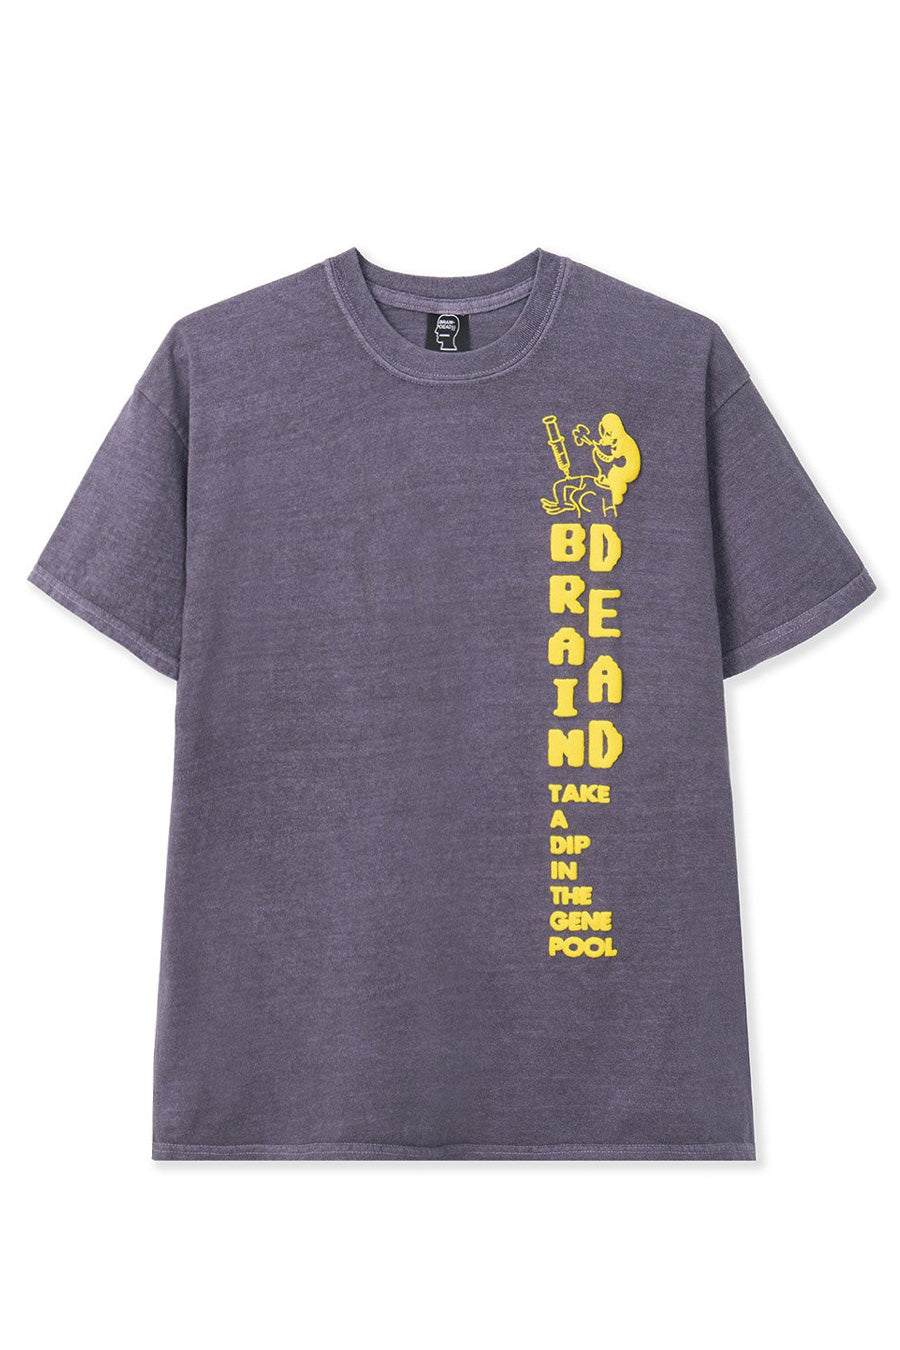 Brain Dead - Purple Gene Pool T-Shirt